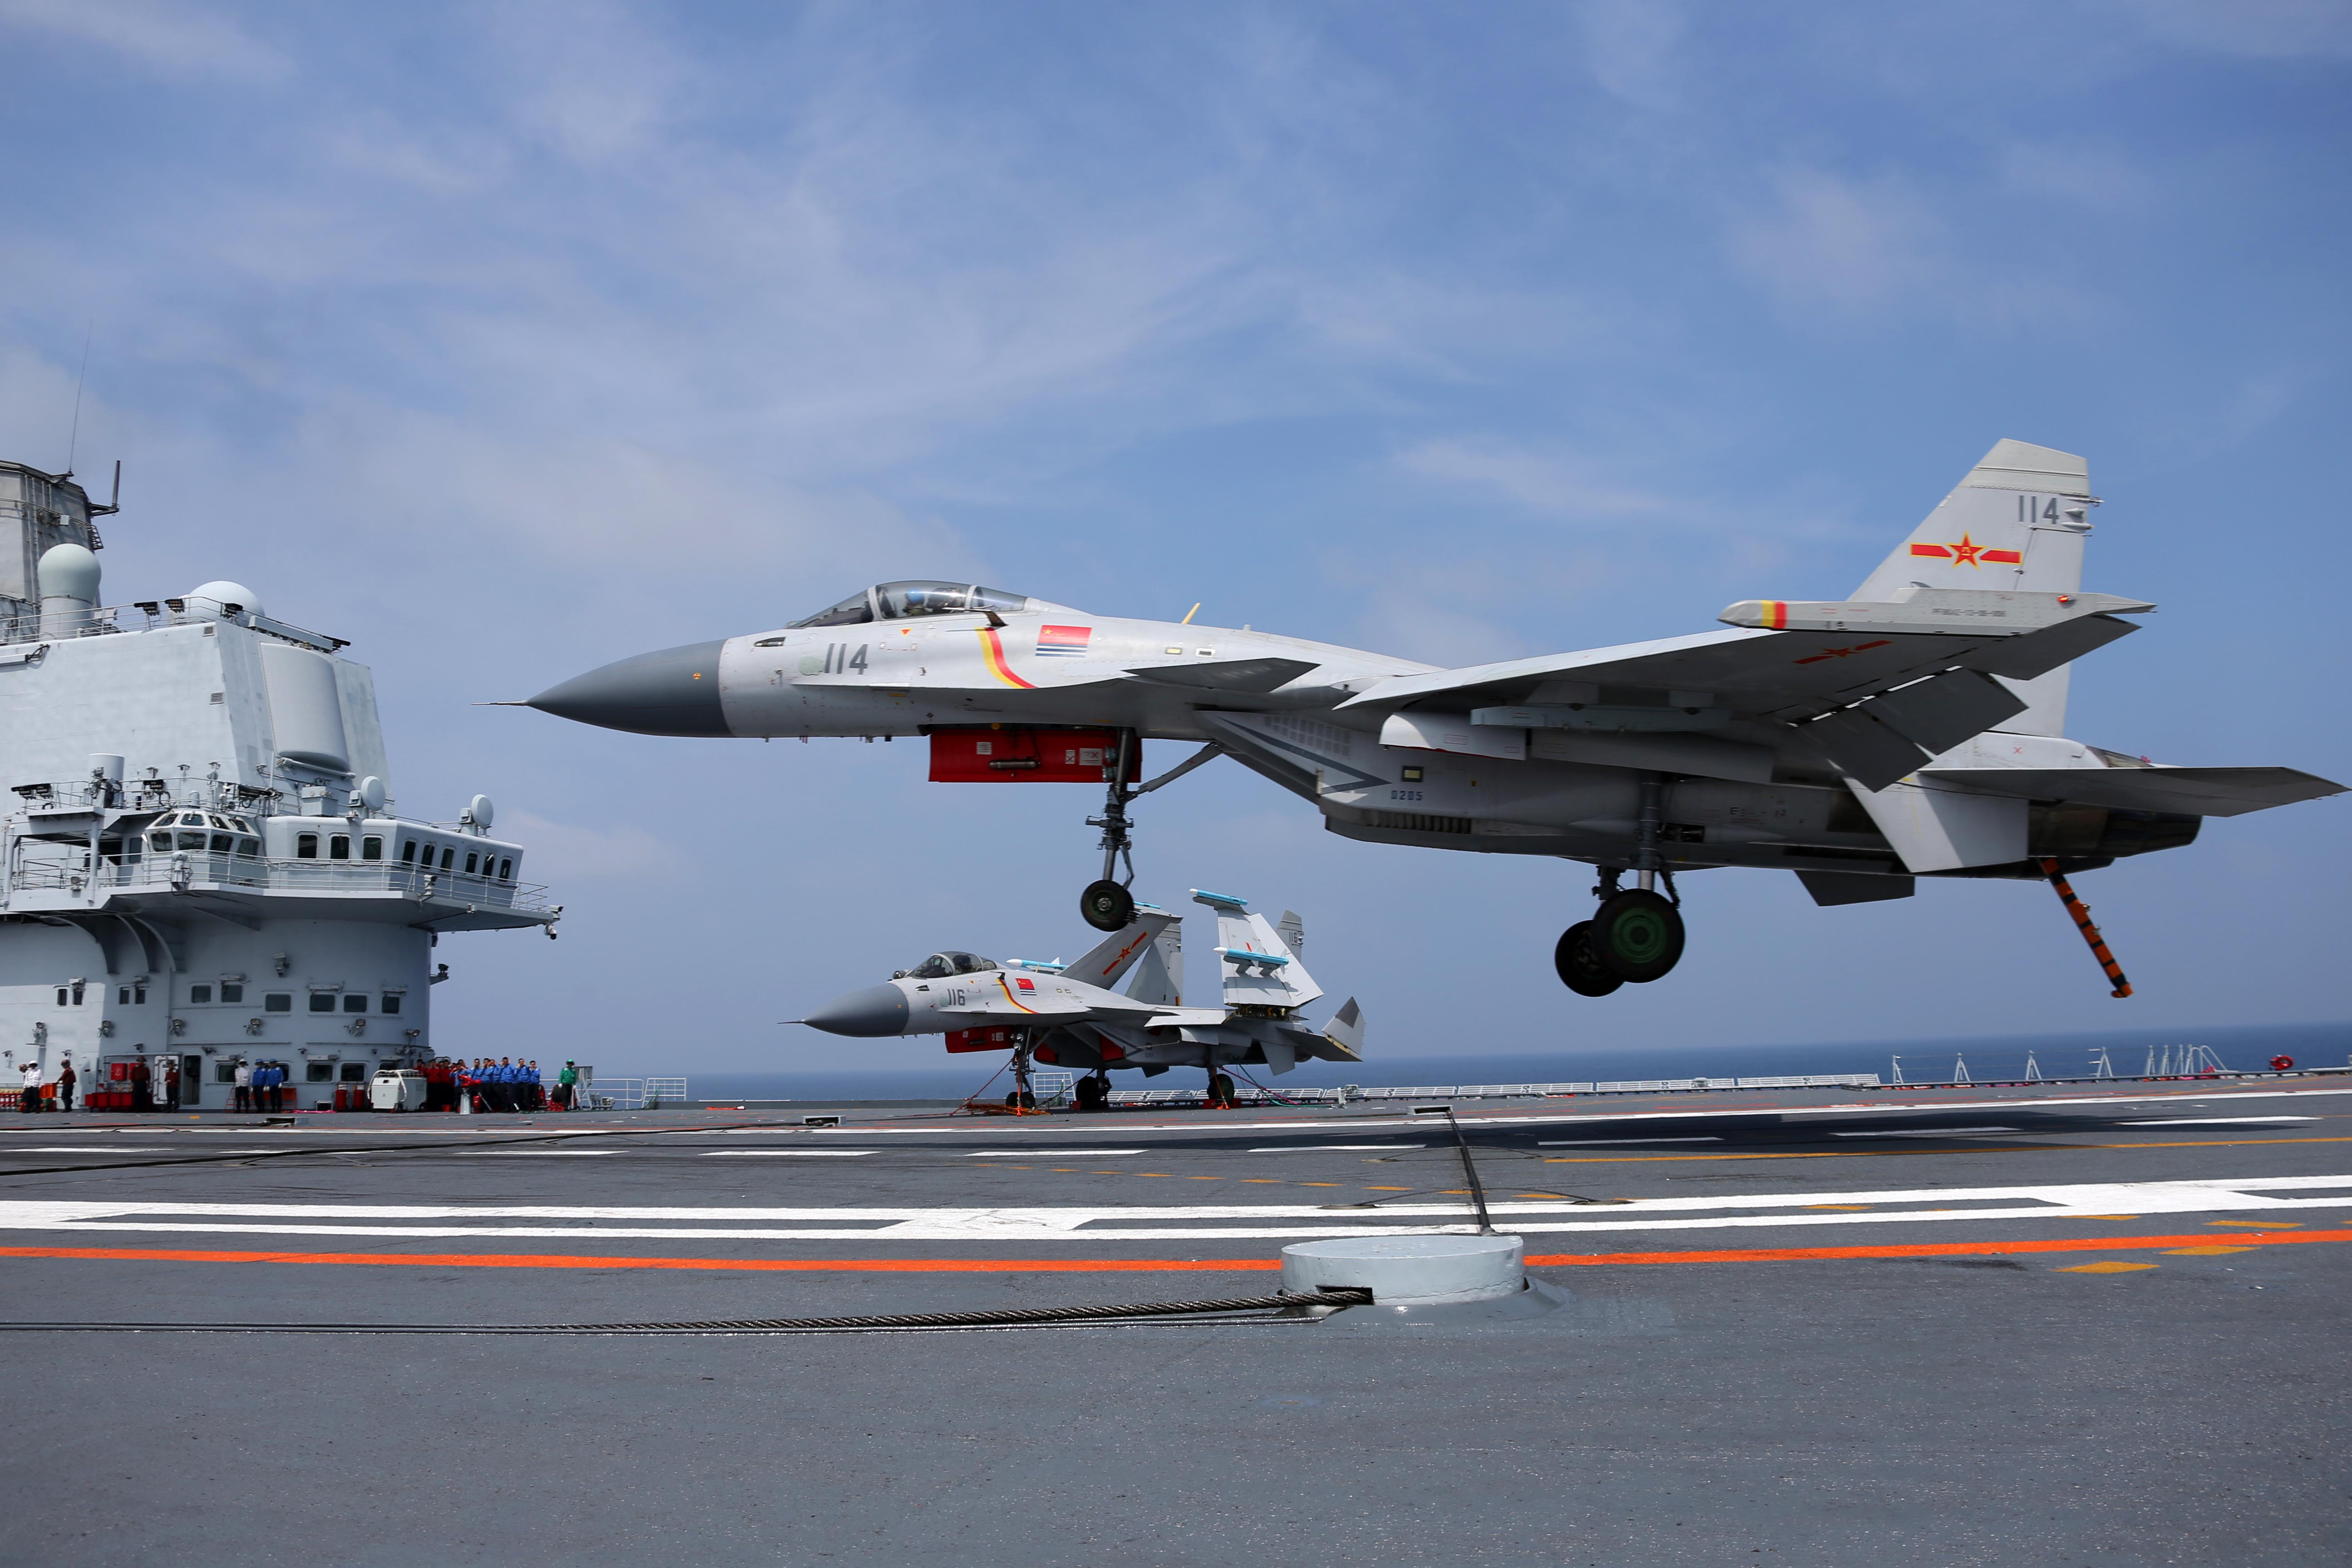 Shenyang J-15 Flying Shark à l'atterrissage